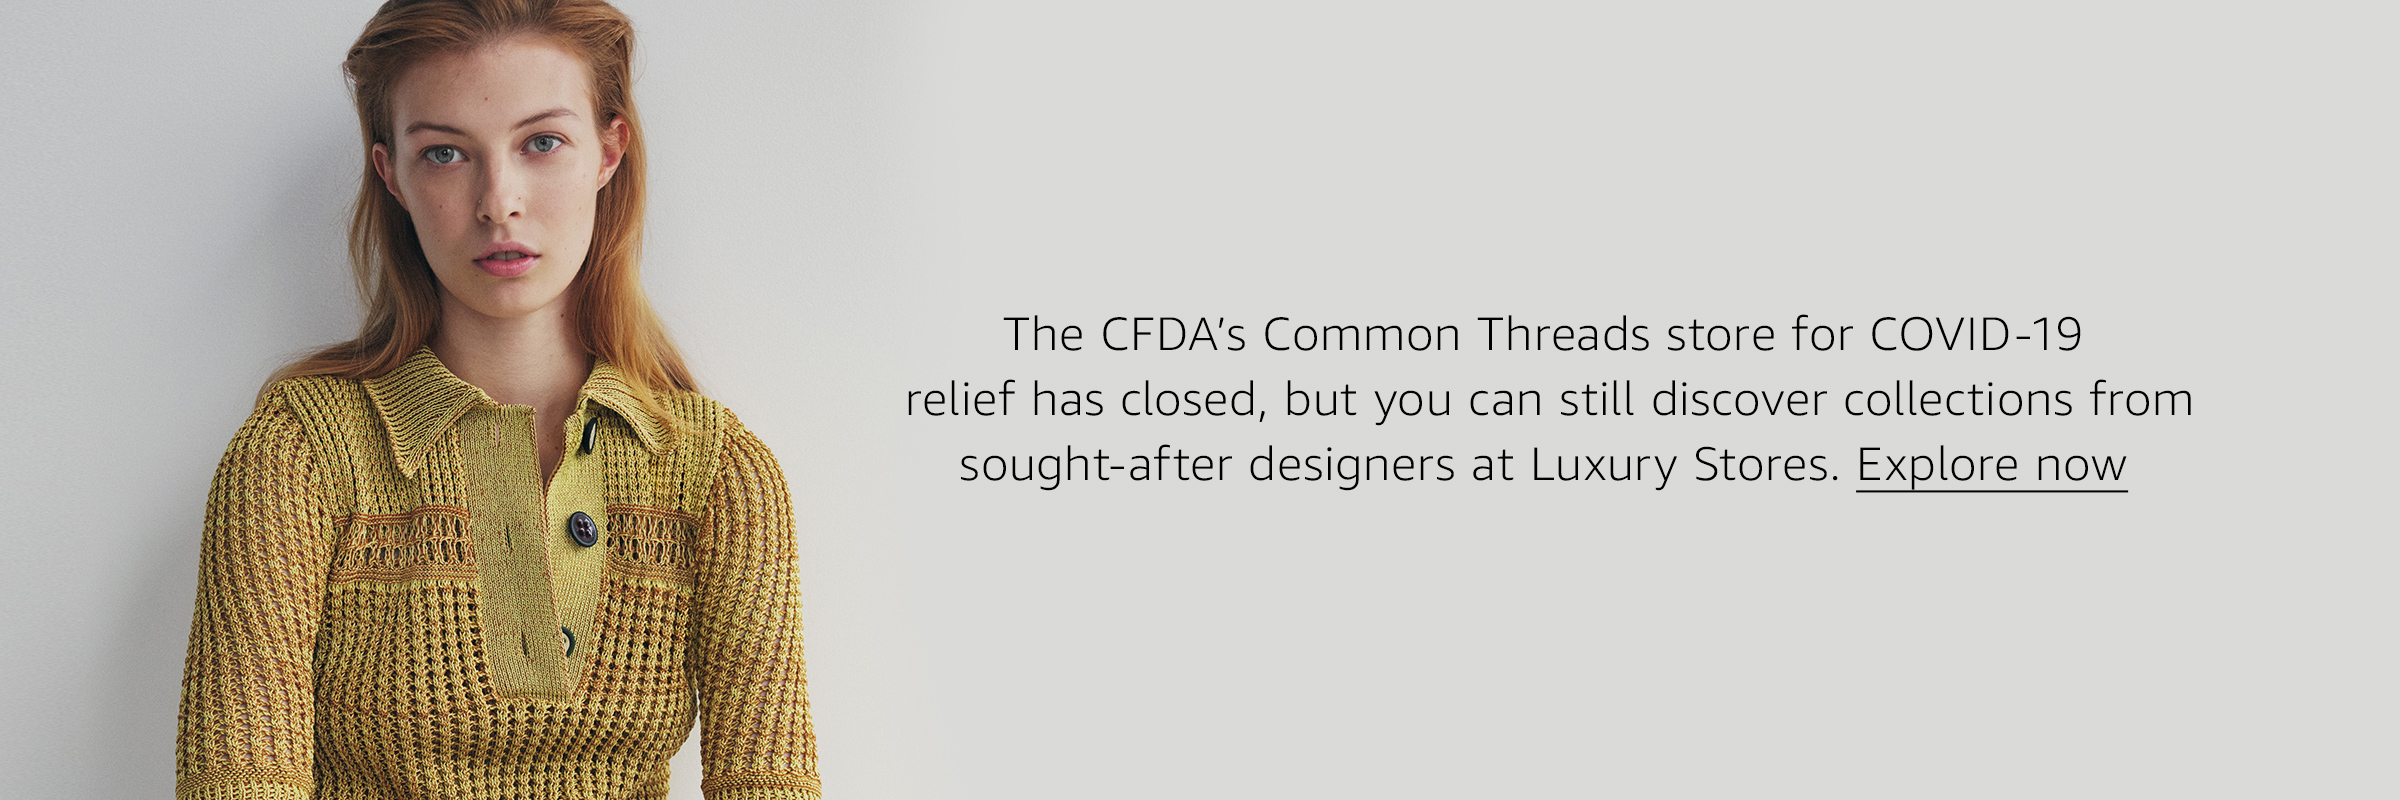 The CFDA's Common Threads store has concluded, but you can still discover collections from designers at Luxury Stores